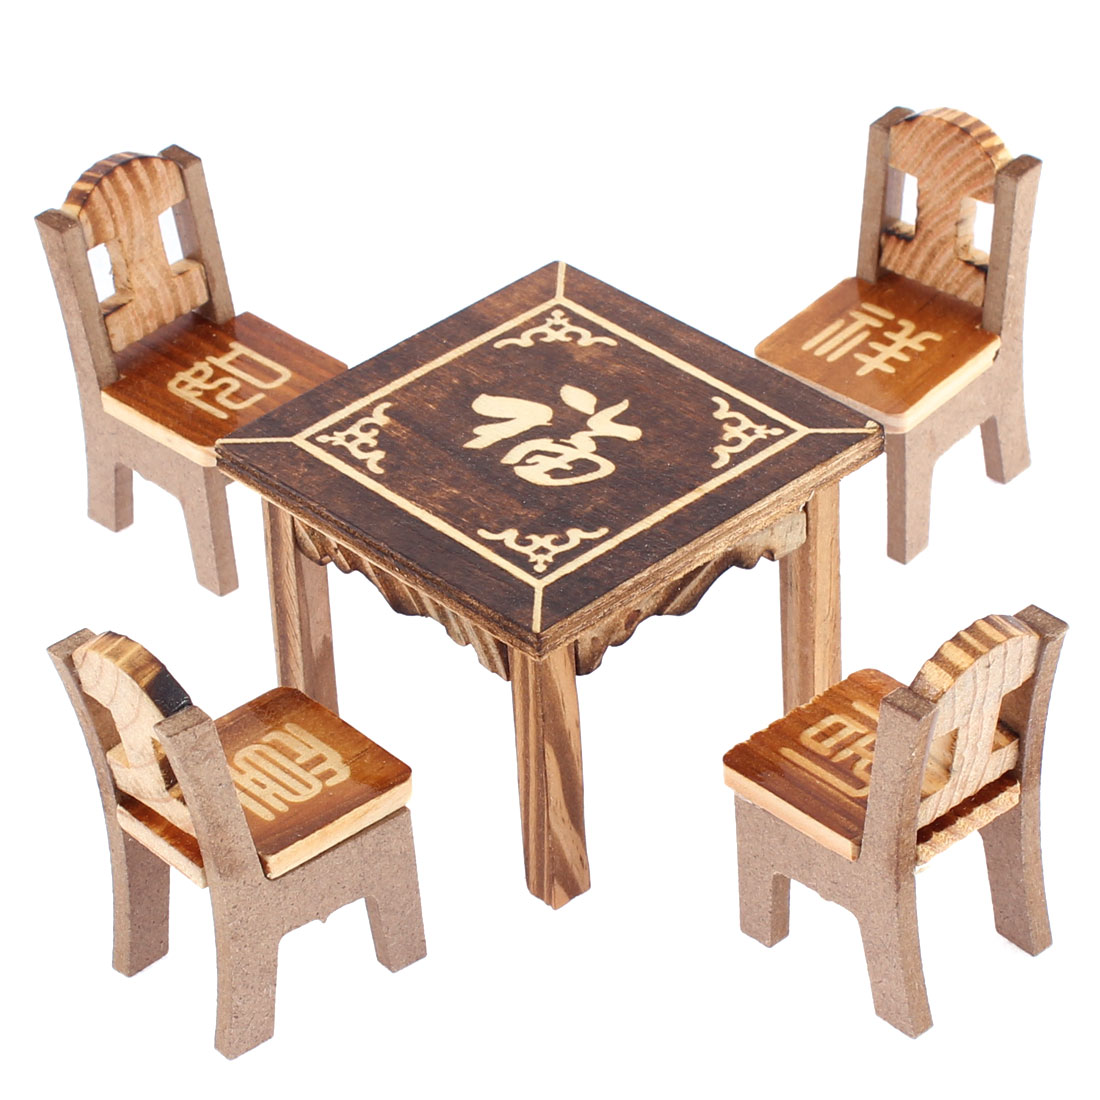 Home Office Desktop Decoration Bless Word Printed Wooden Craft Table Chair Set